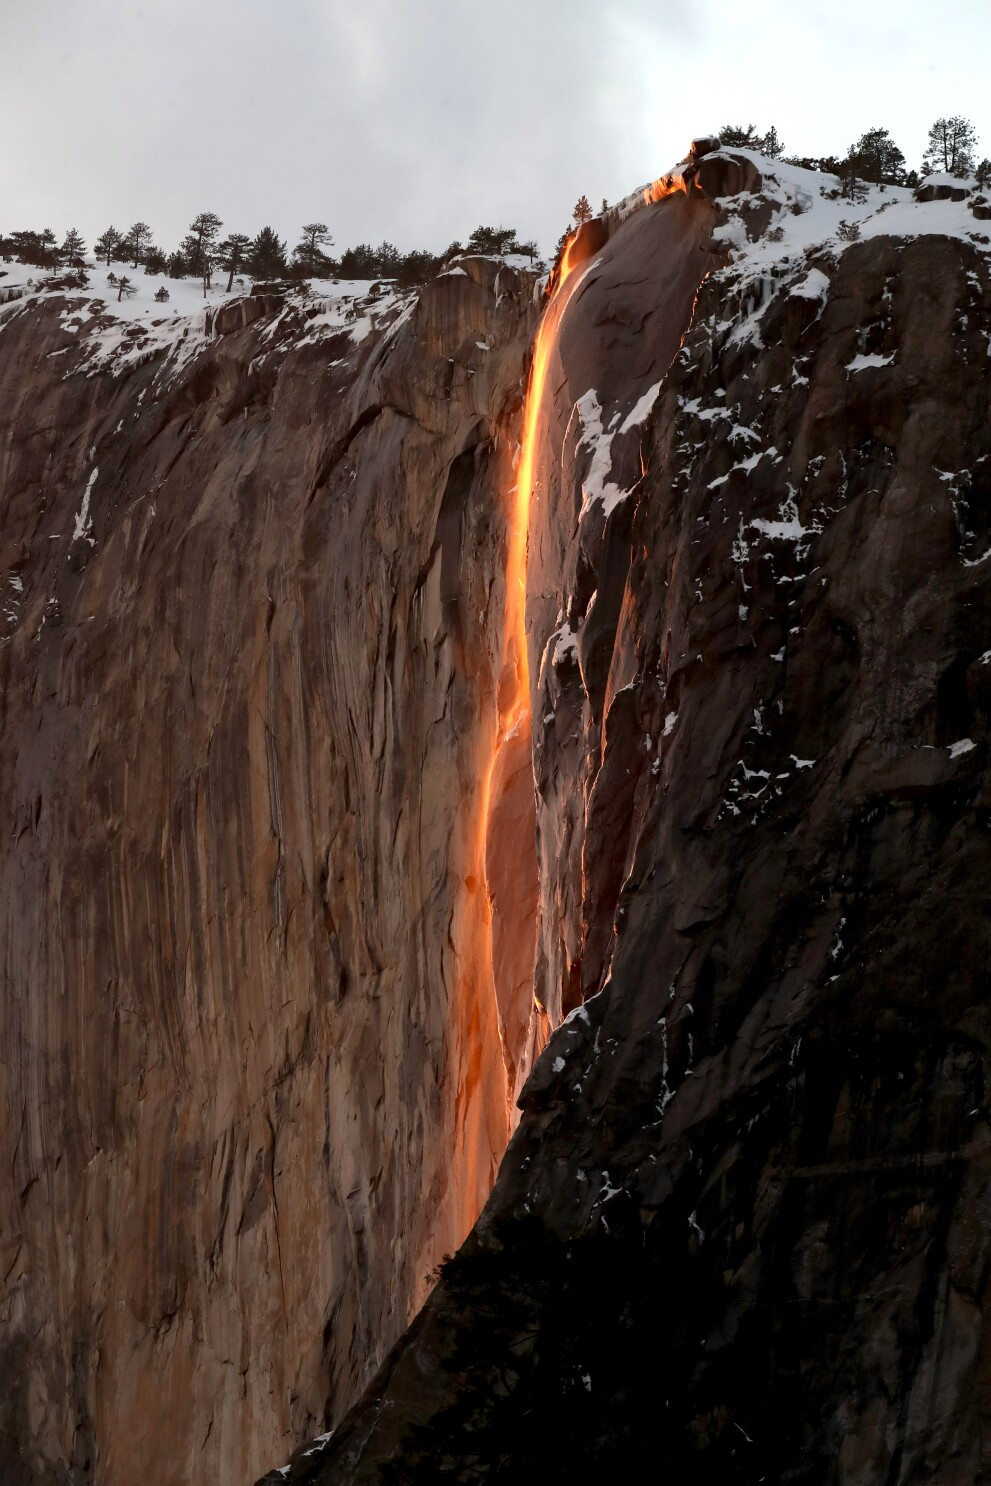 How to best photograph Yosemite's 'firefall' glow